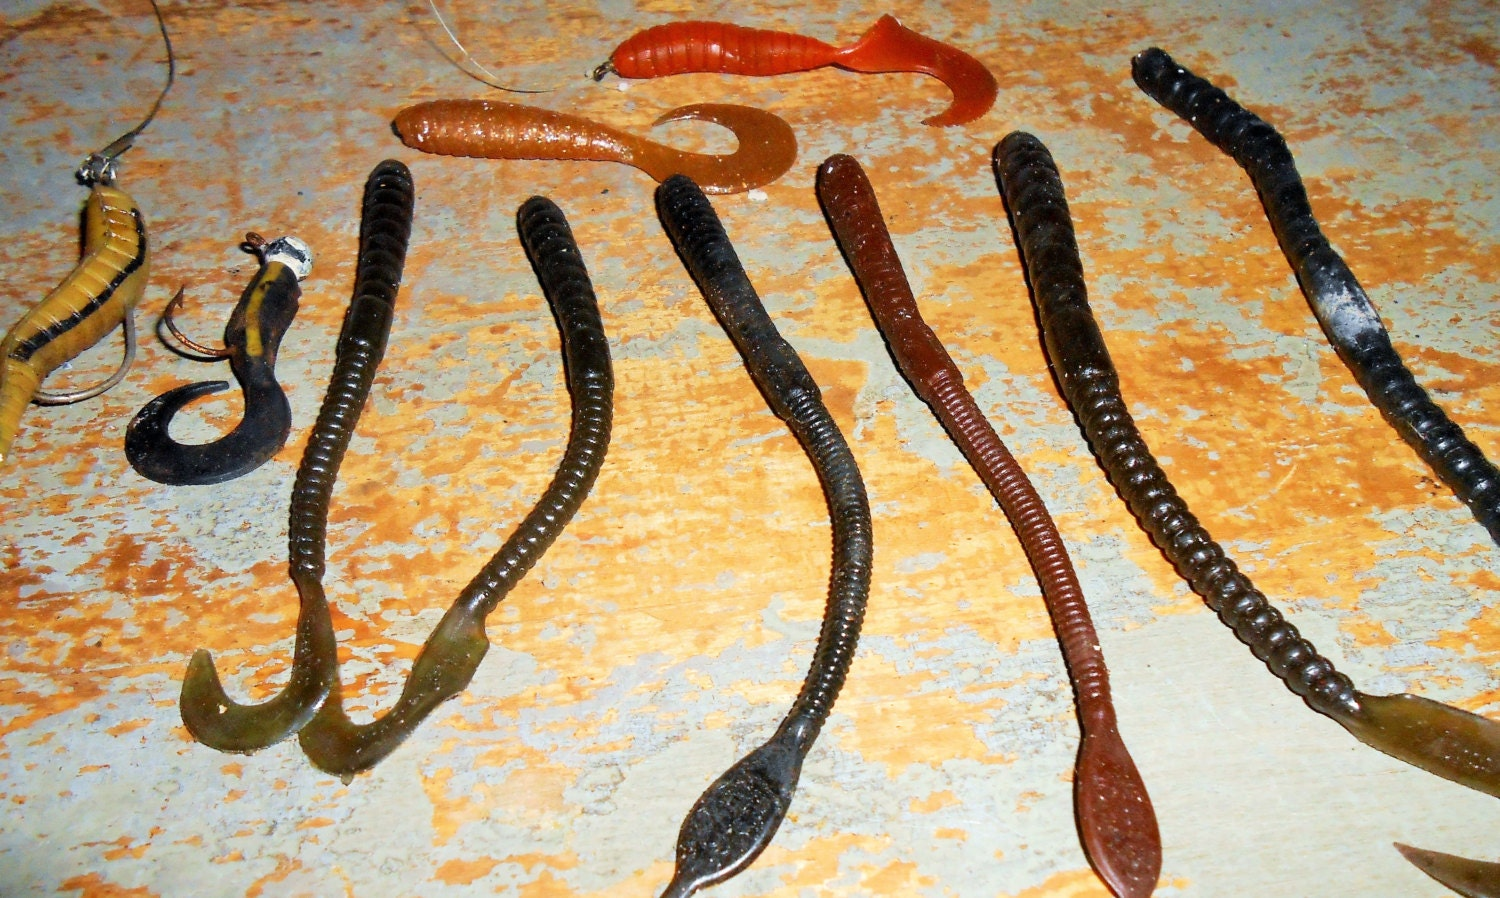 Vintage fishing lures soft plastic worms fishing gear for Vintage fishing tackle